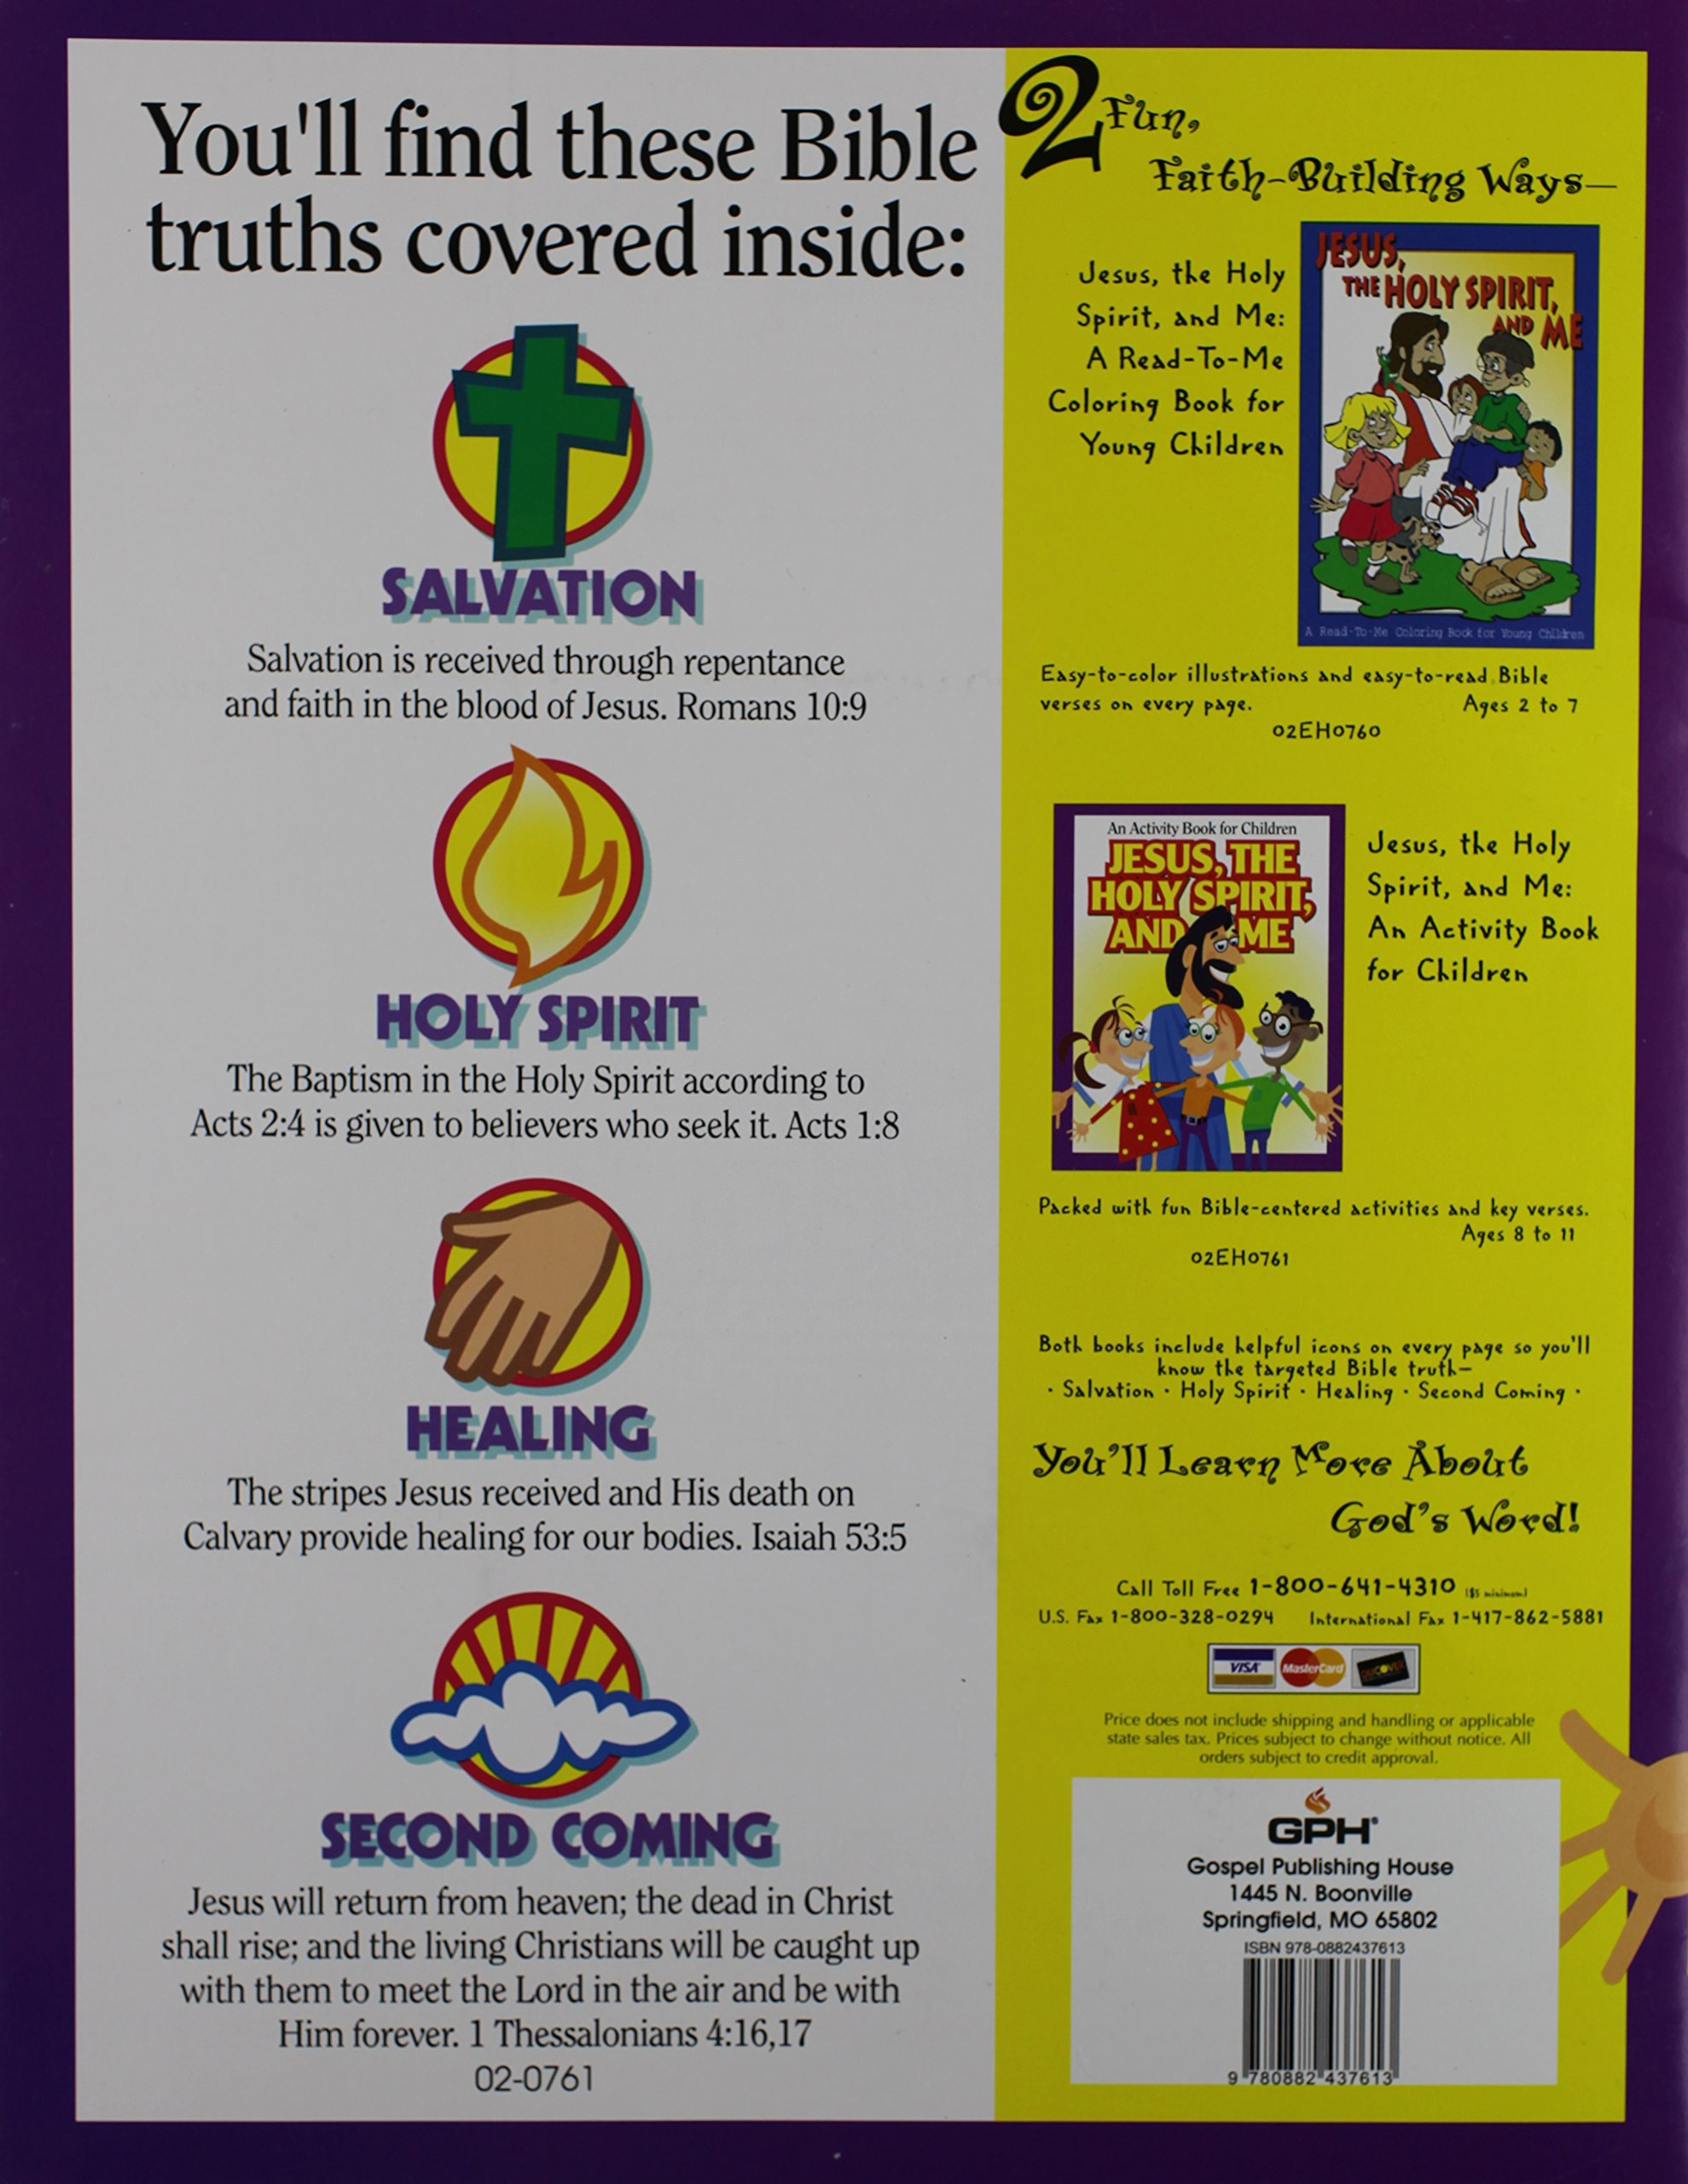 jesus the holy spirit and me an activity book for children gph